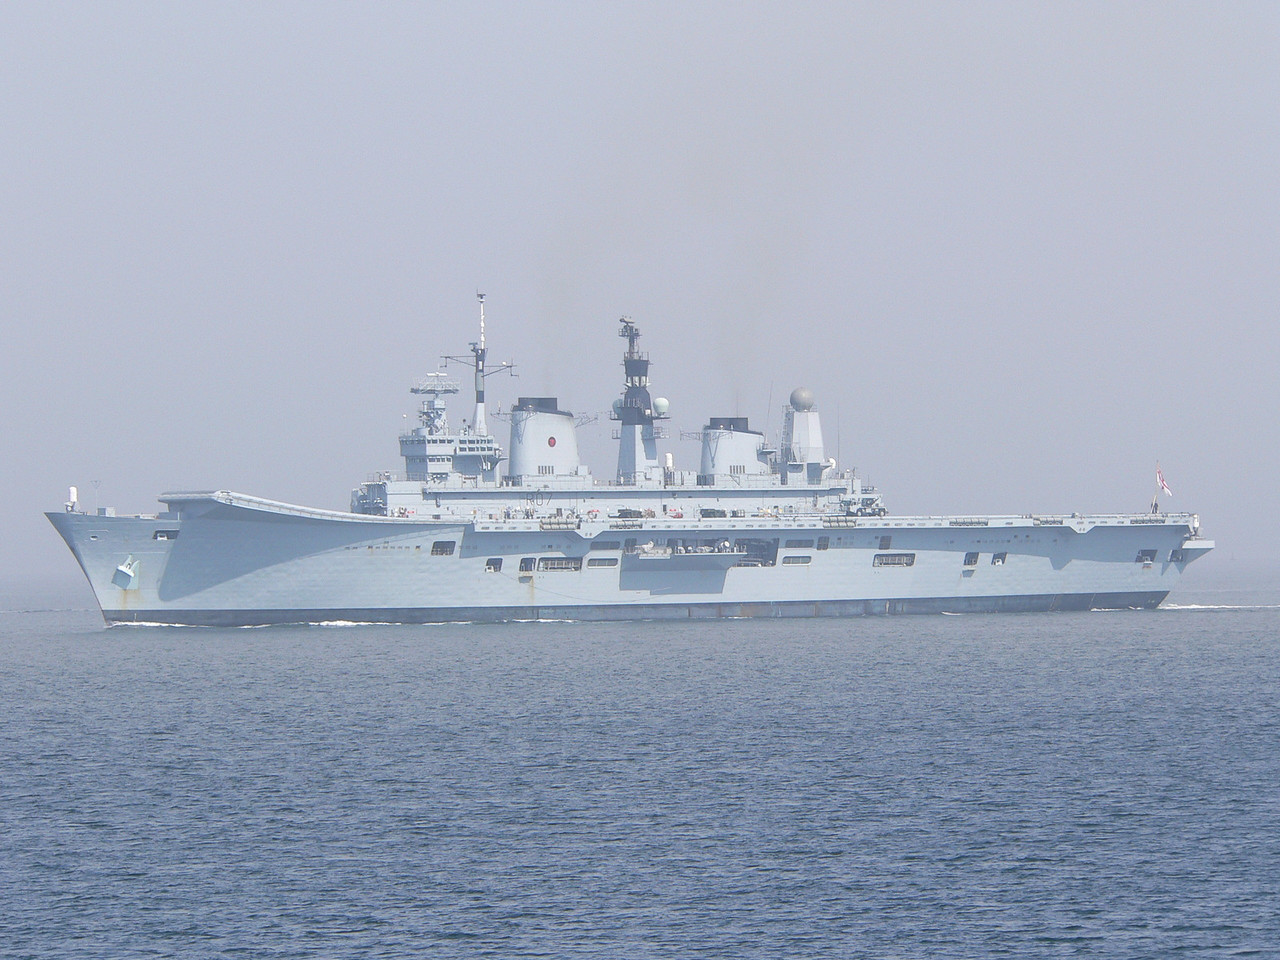 R-07 HMS ARK ROYAL